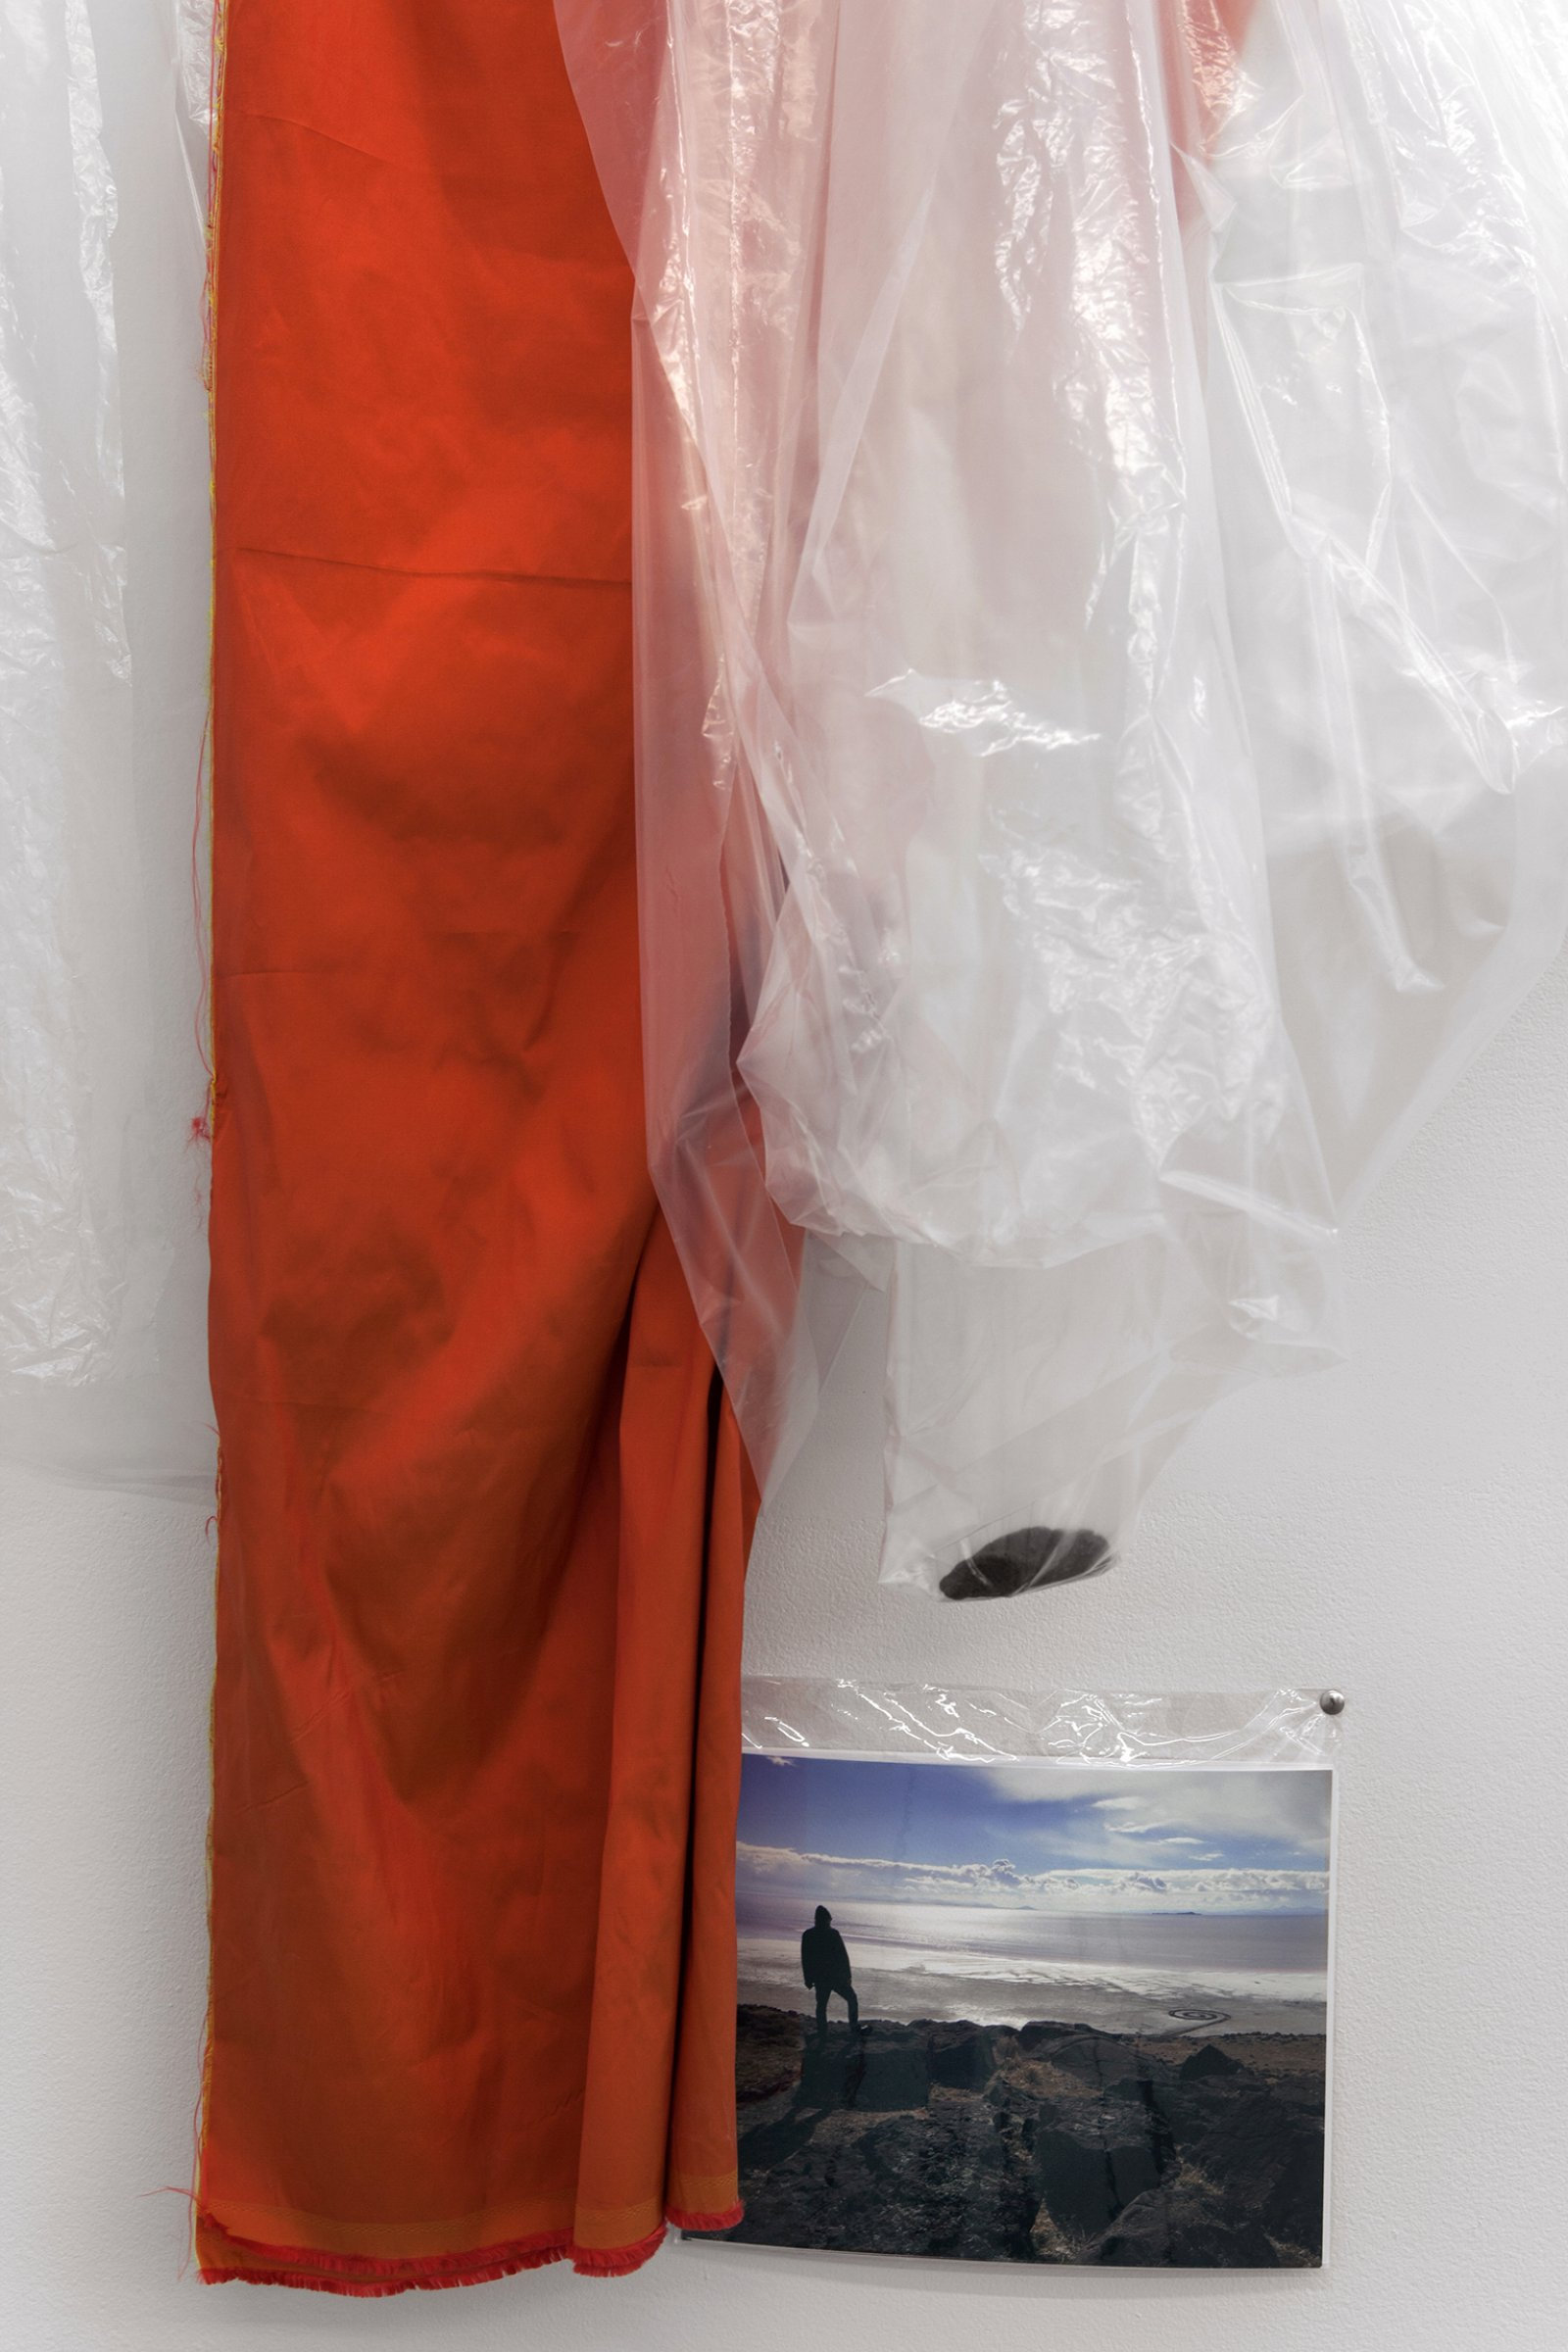 Duane Linklater,coup(detail), 2016, plastic sheeting, polyester cloth, stone from Spiral Jetty, thumb tacks, colour photograph, 67 x 43 x 8 in. (170 x 109 x 20 cm), dimensions variable